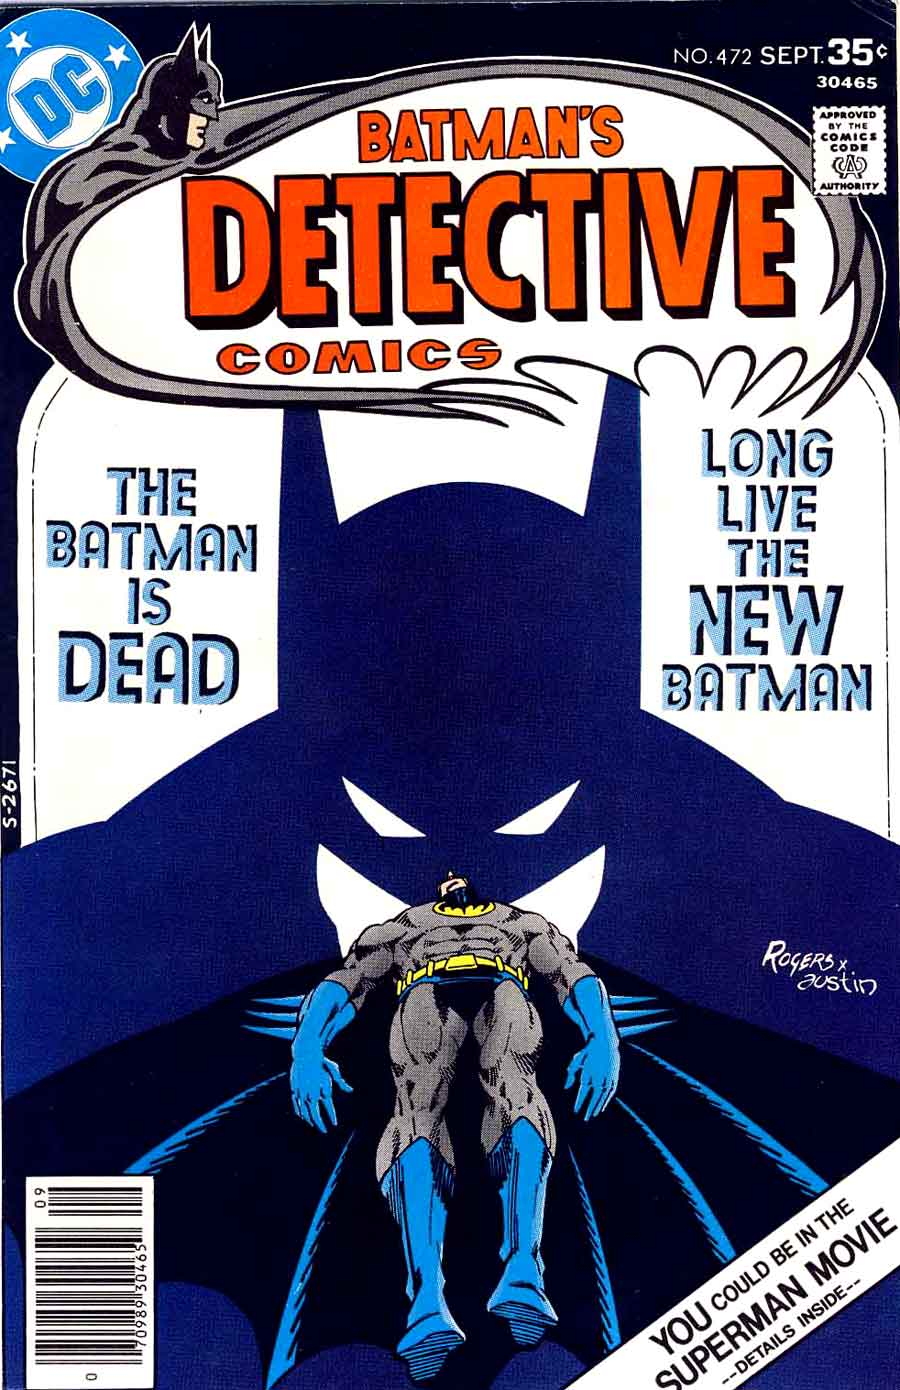 Detective Comics v1 #472 dc comic book cover art by Marshall Rogers